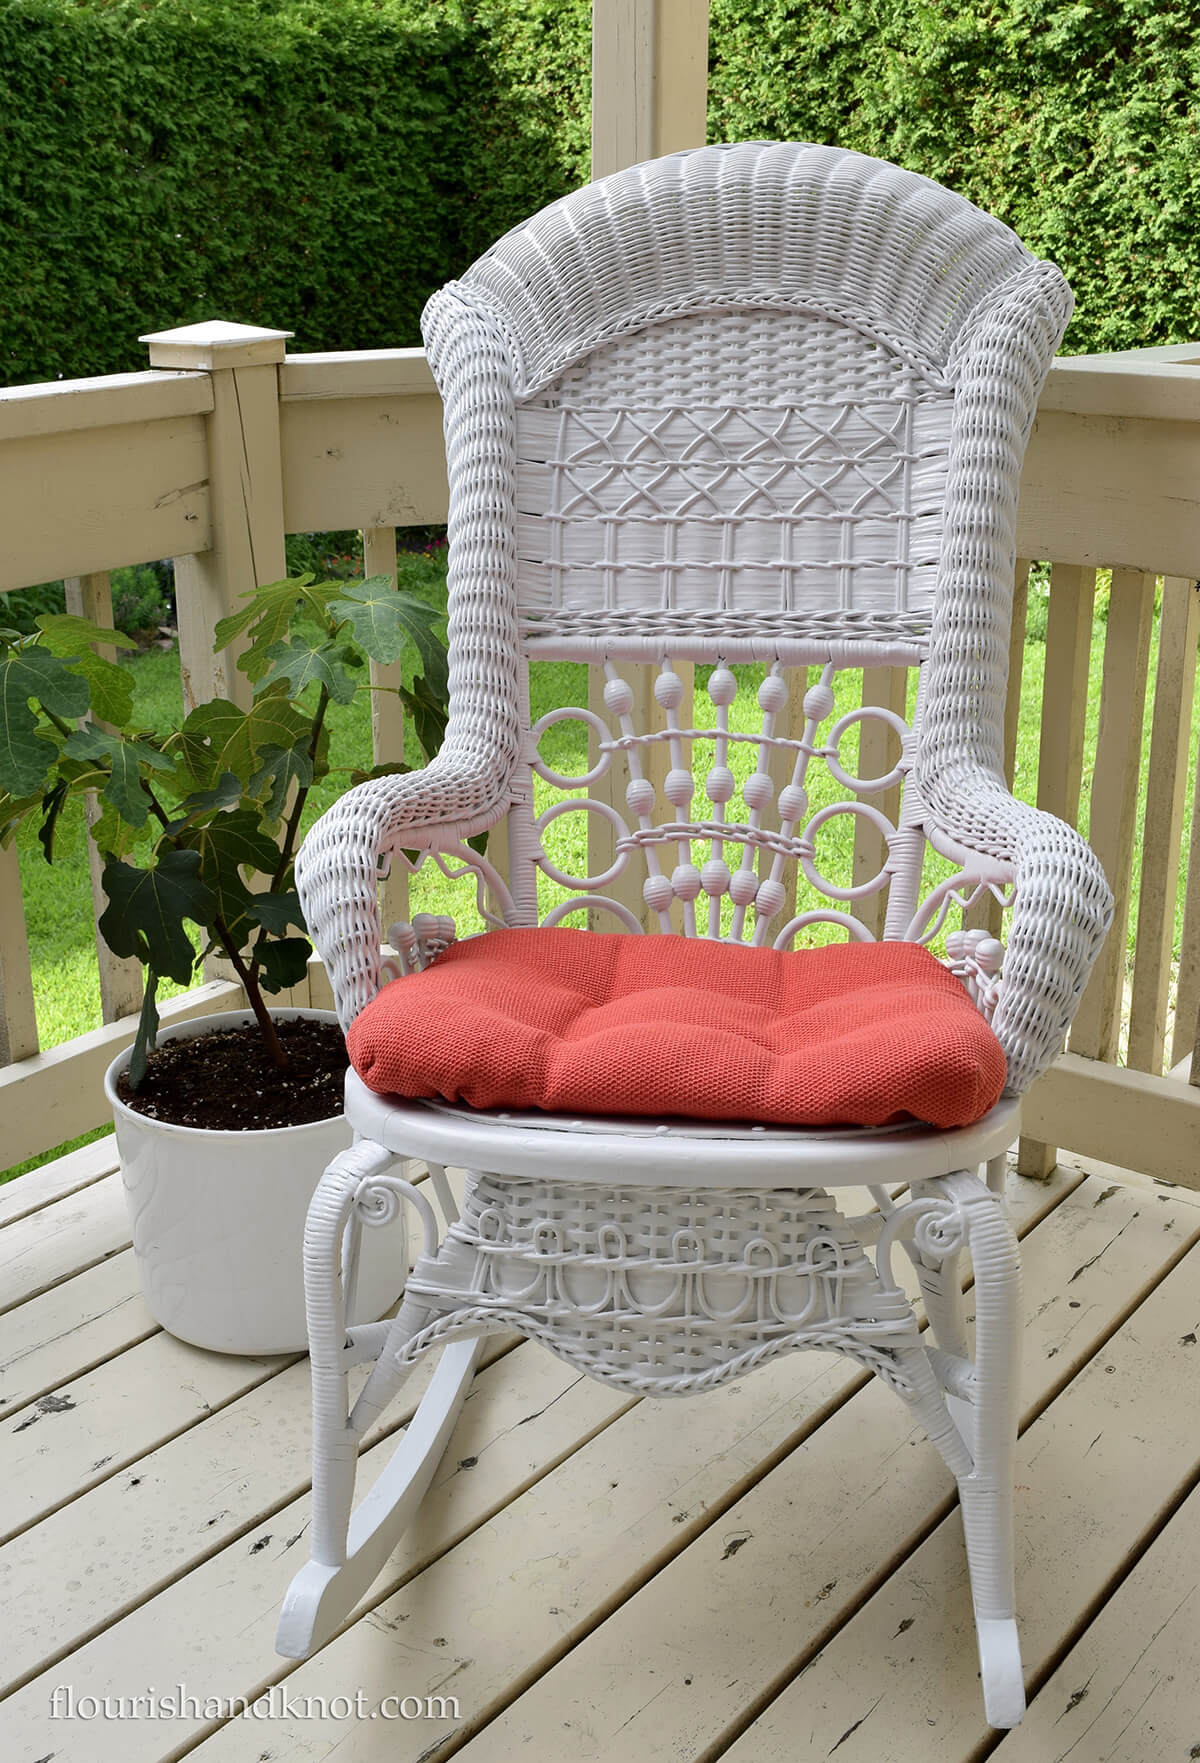 Revitalized Gorgeous Wicker Rocking Chair